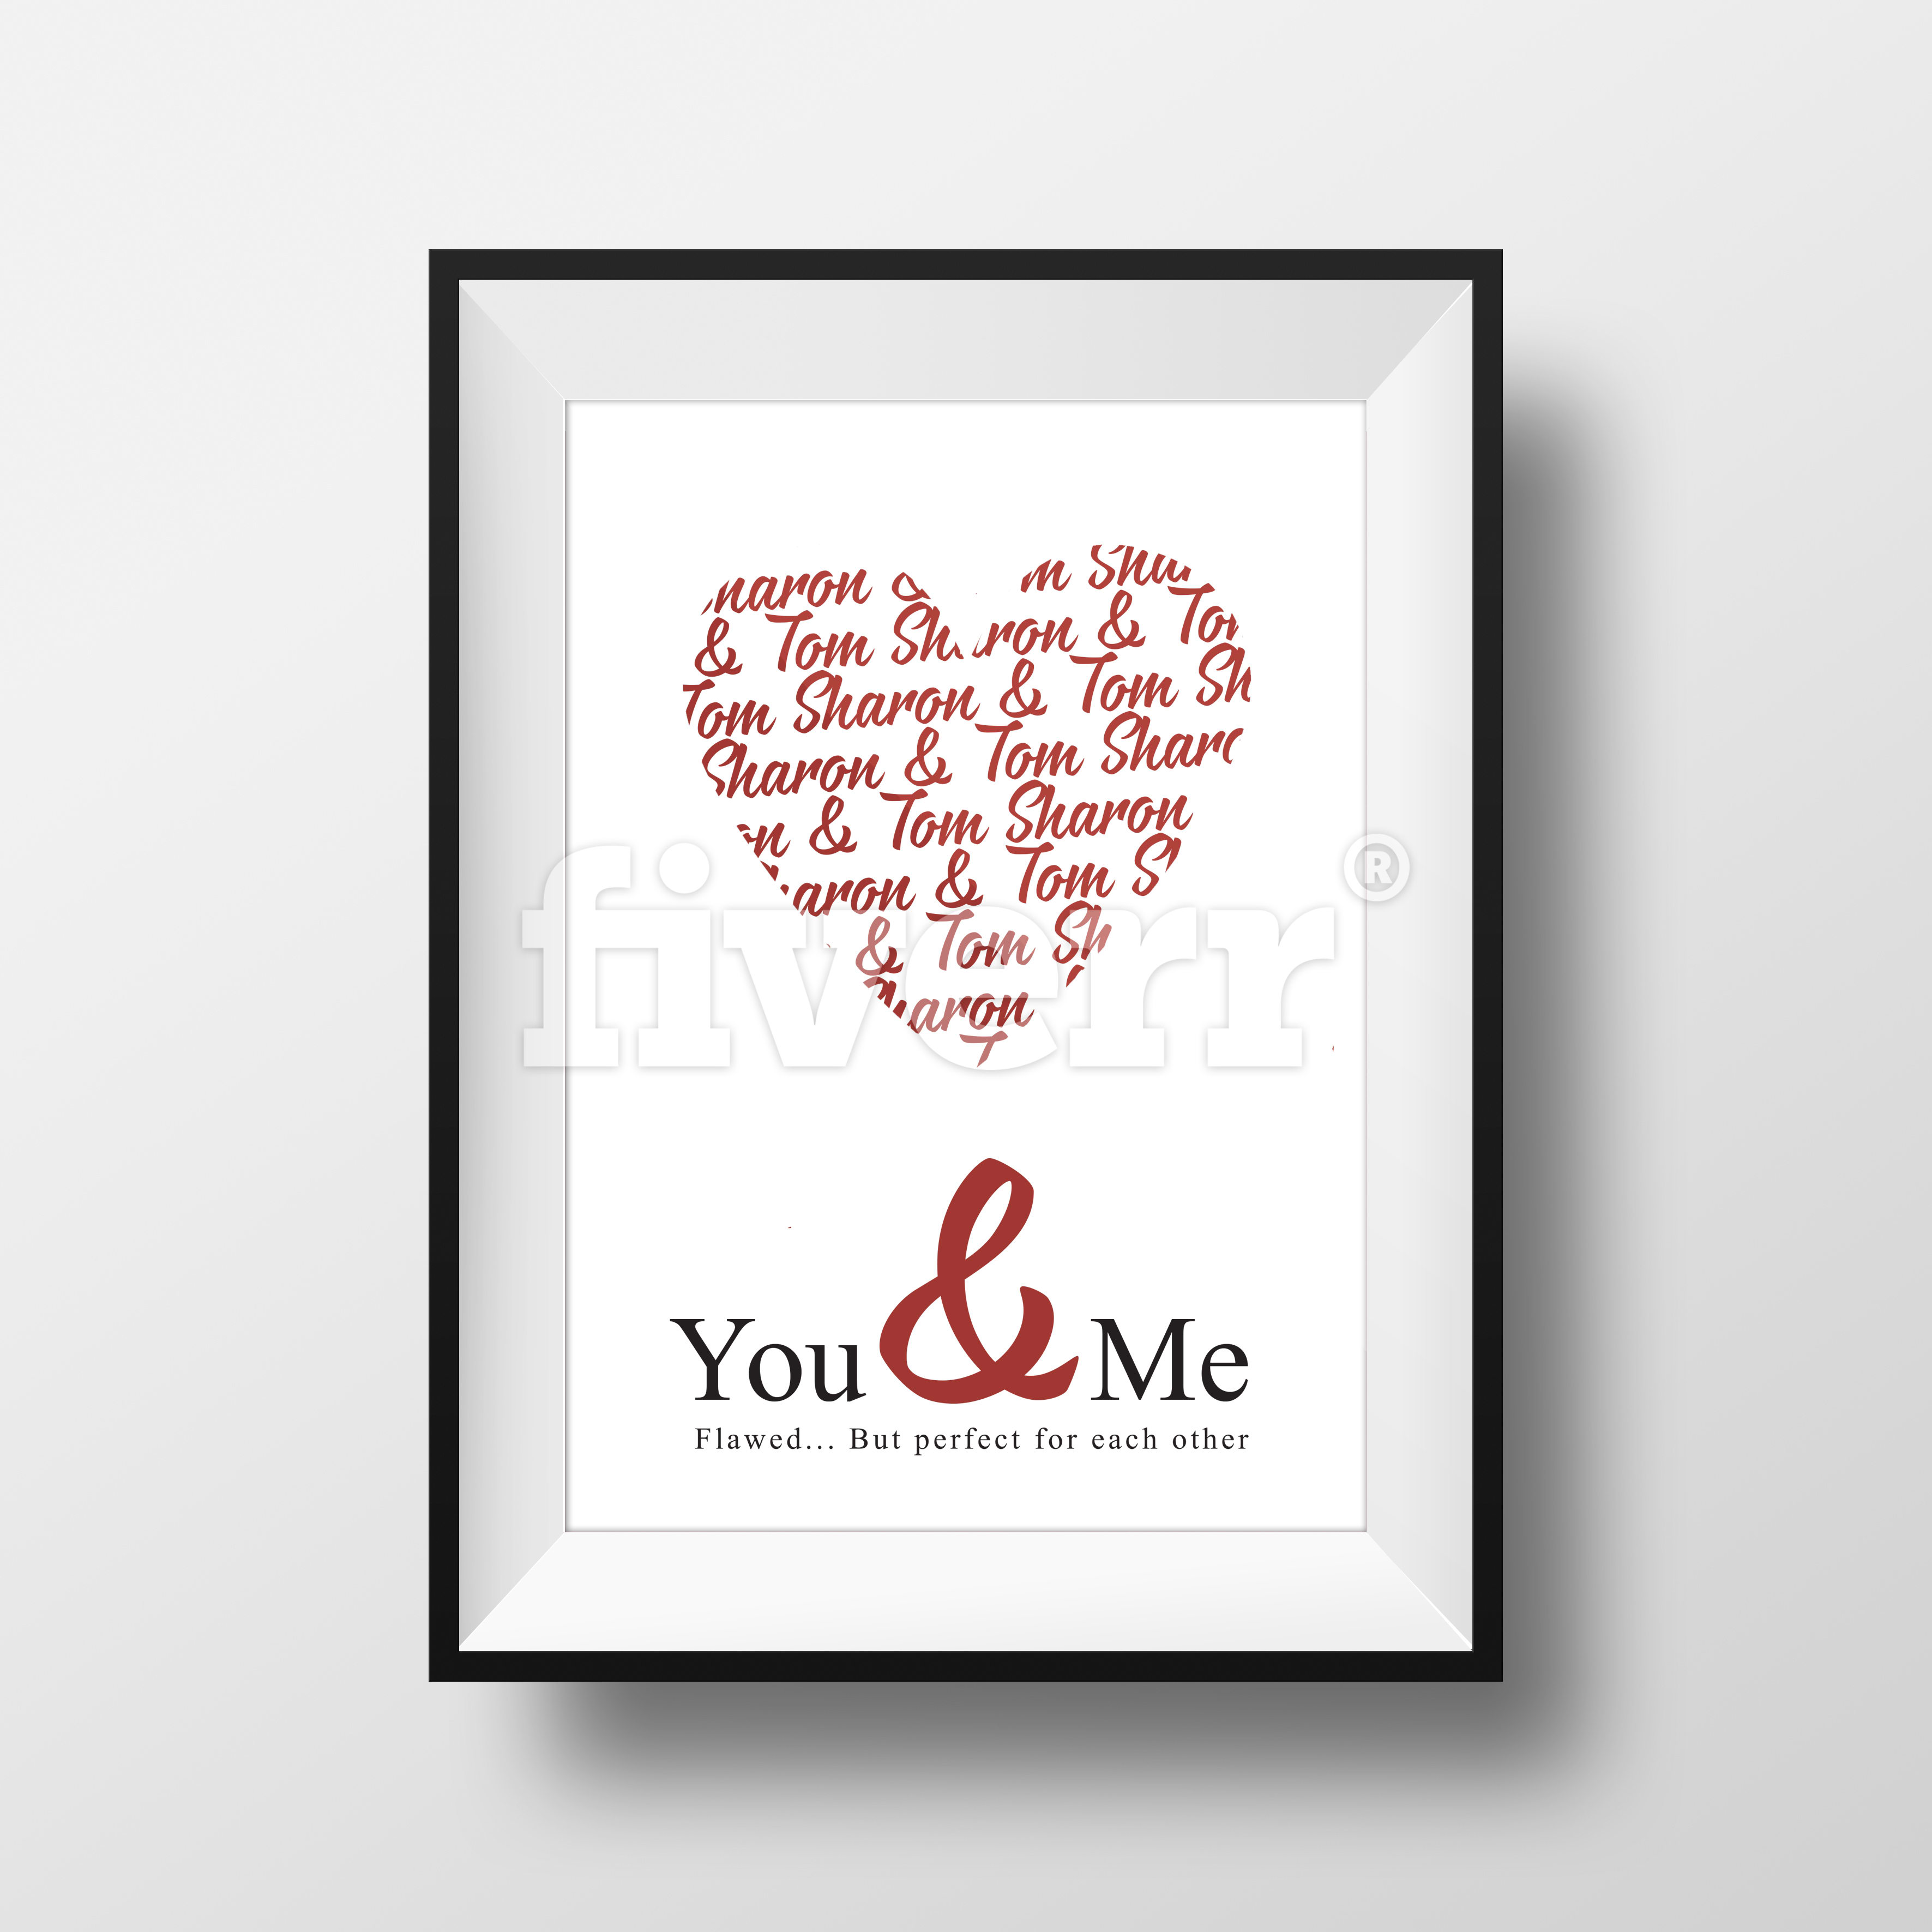 Put your quotes or pictures on an artwork frames by Maulionaire